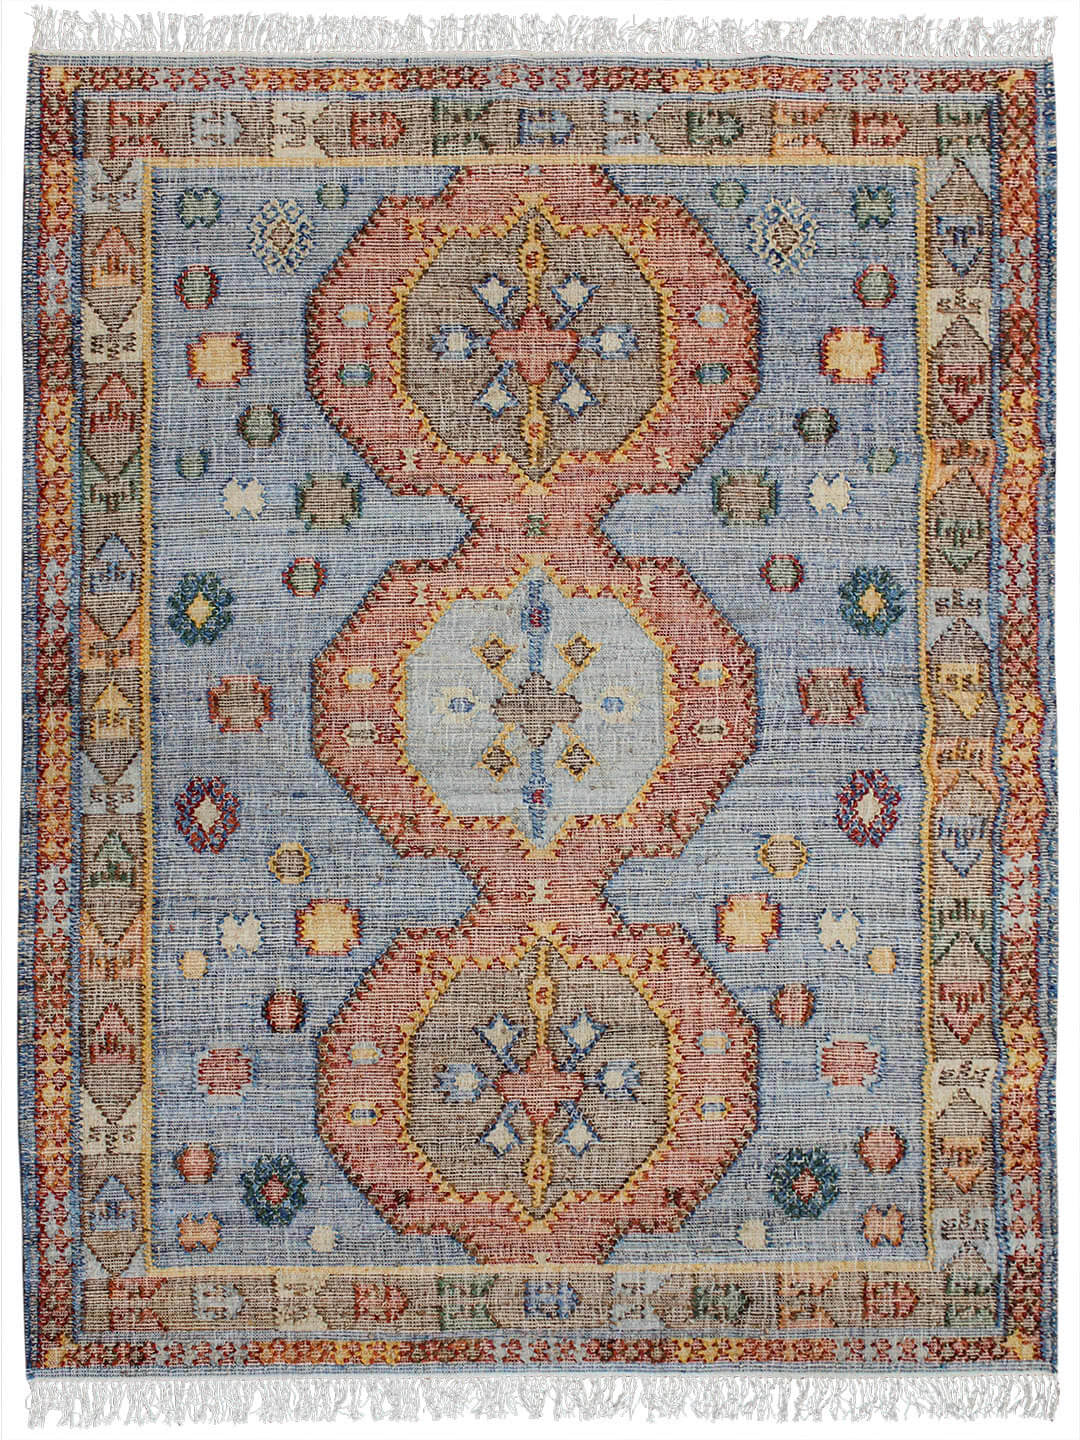 boho-lennox-detail-floor-rugs-perth-kilim-colourful-Stans